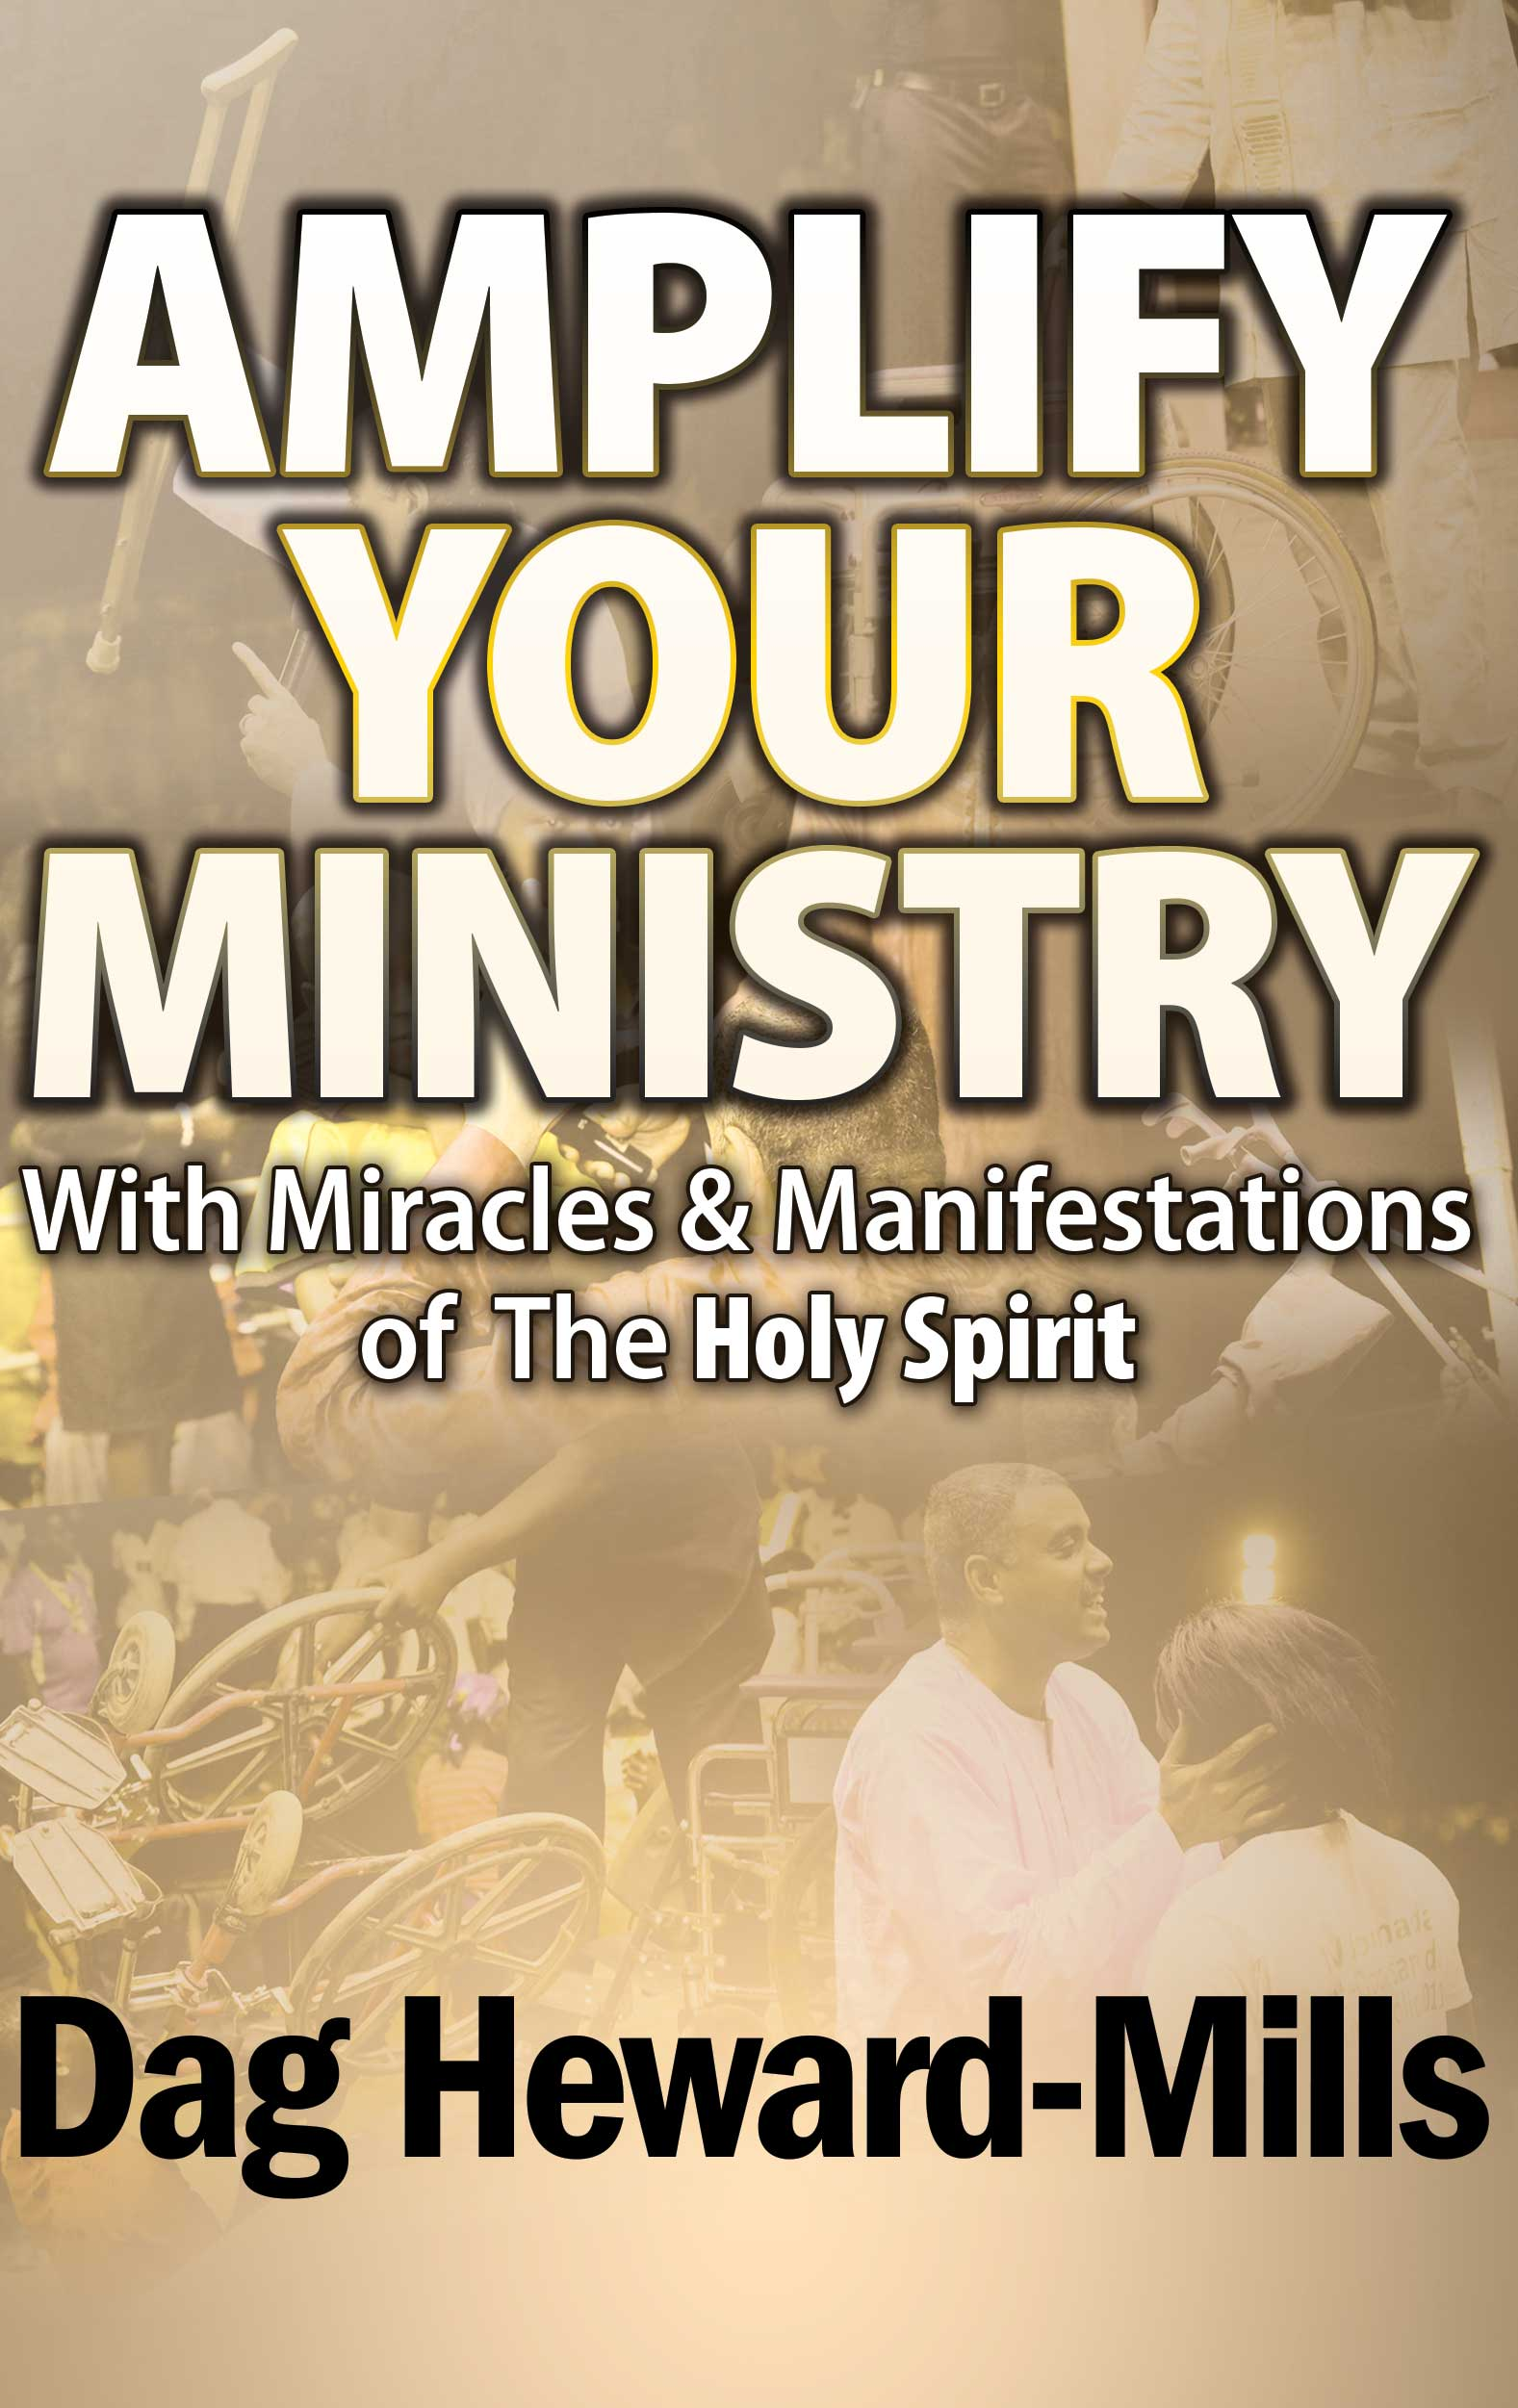 Amplify-Your-Ministry-front